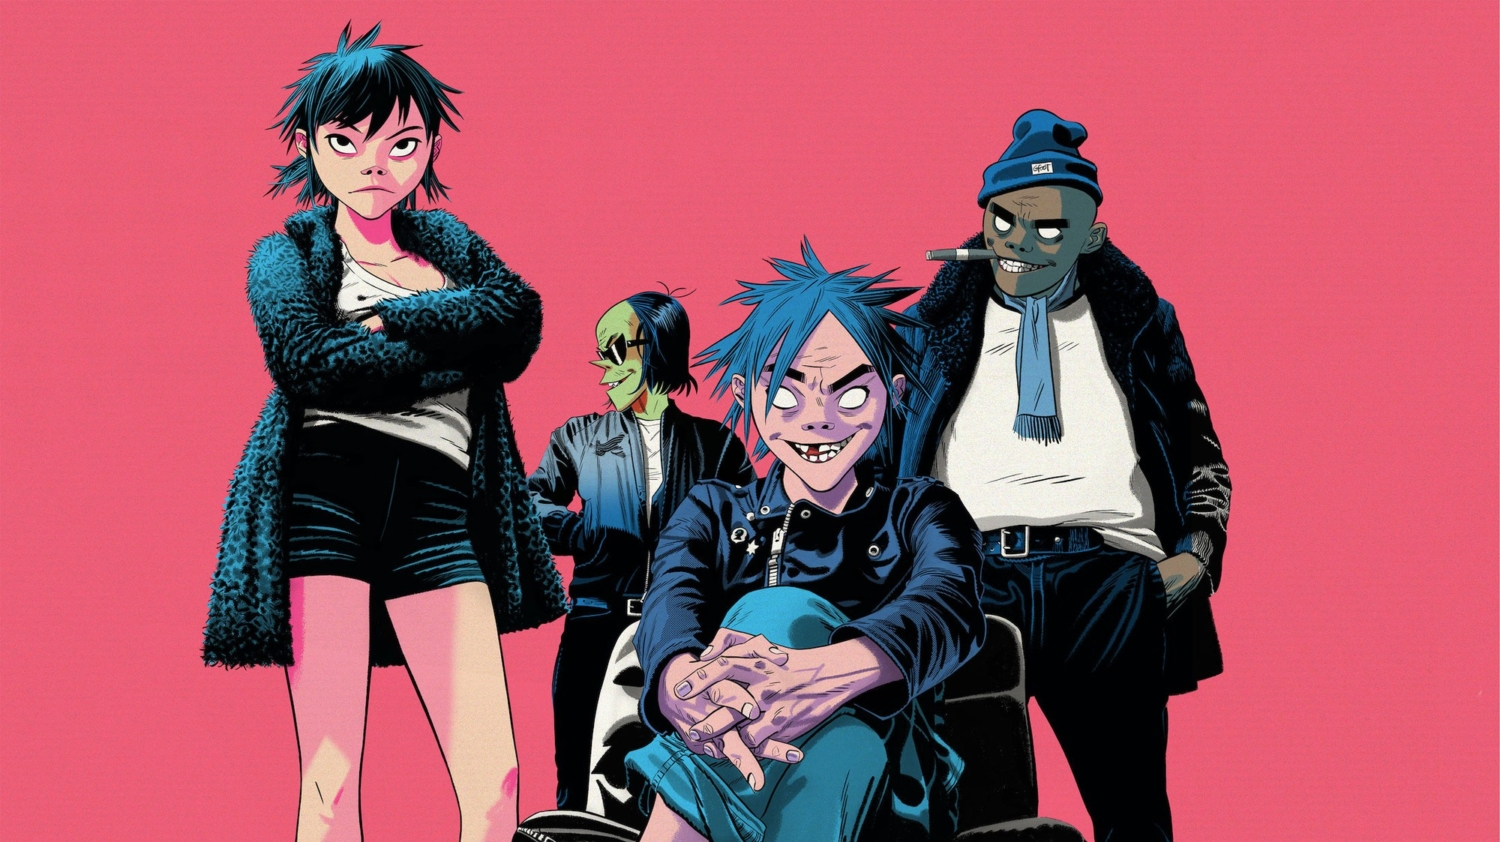 Gorillaz Momentary Bliss Top 5 Song 1